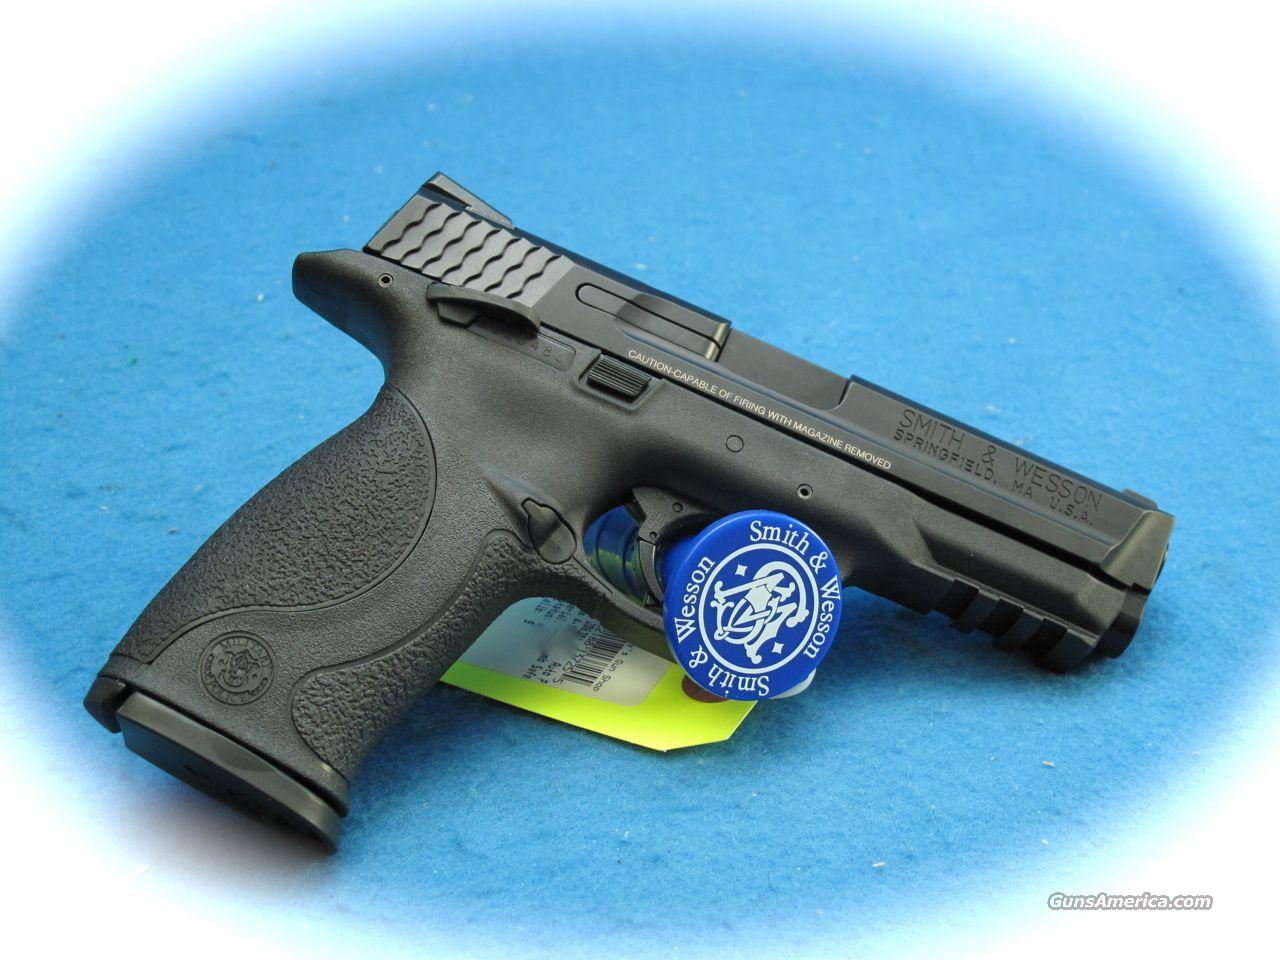 Smith & Wesson M&P 9mm Full Size Thumb Safety **NEW**  Guns > Pistols > Smith & Wesson Pistols - Autos > Polymer Frame